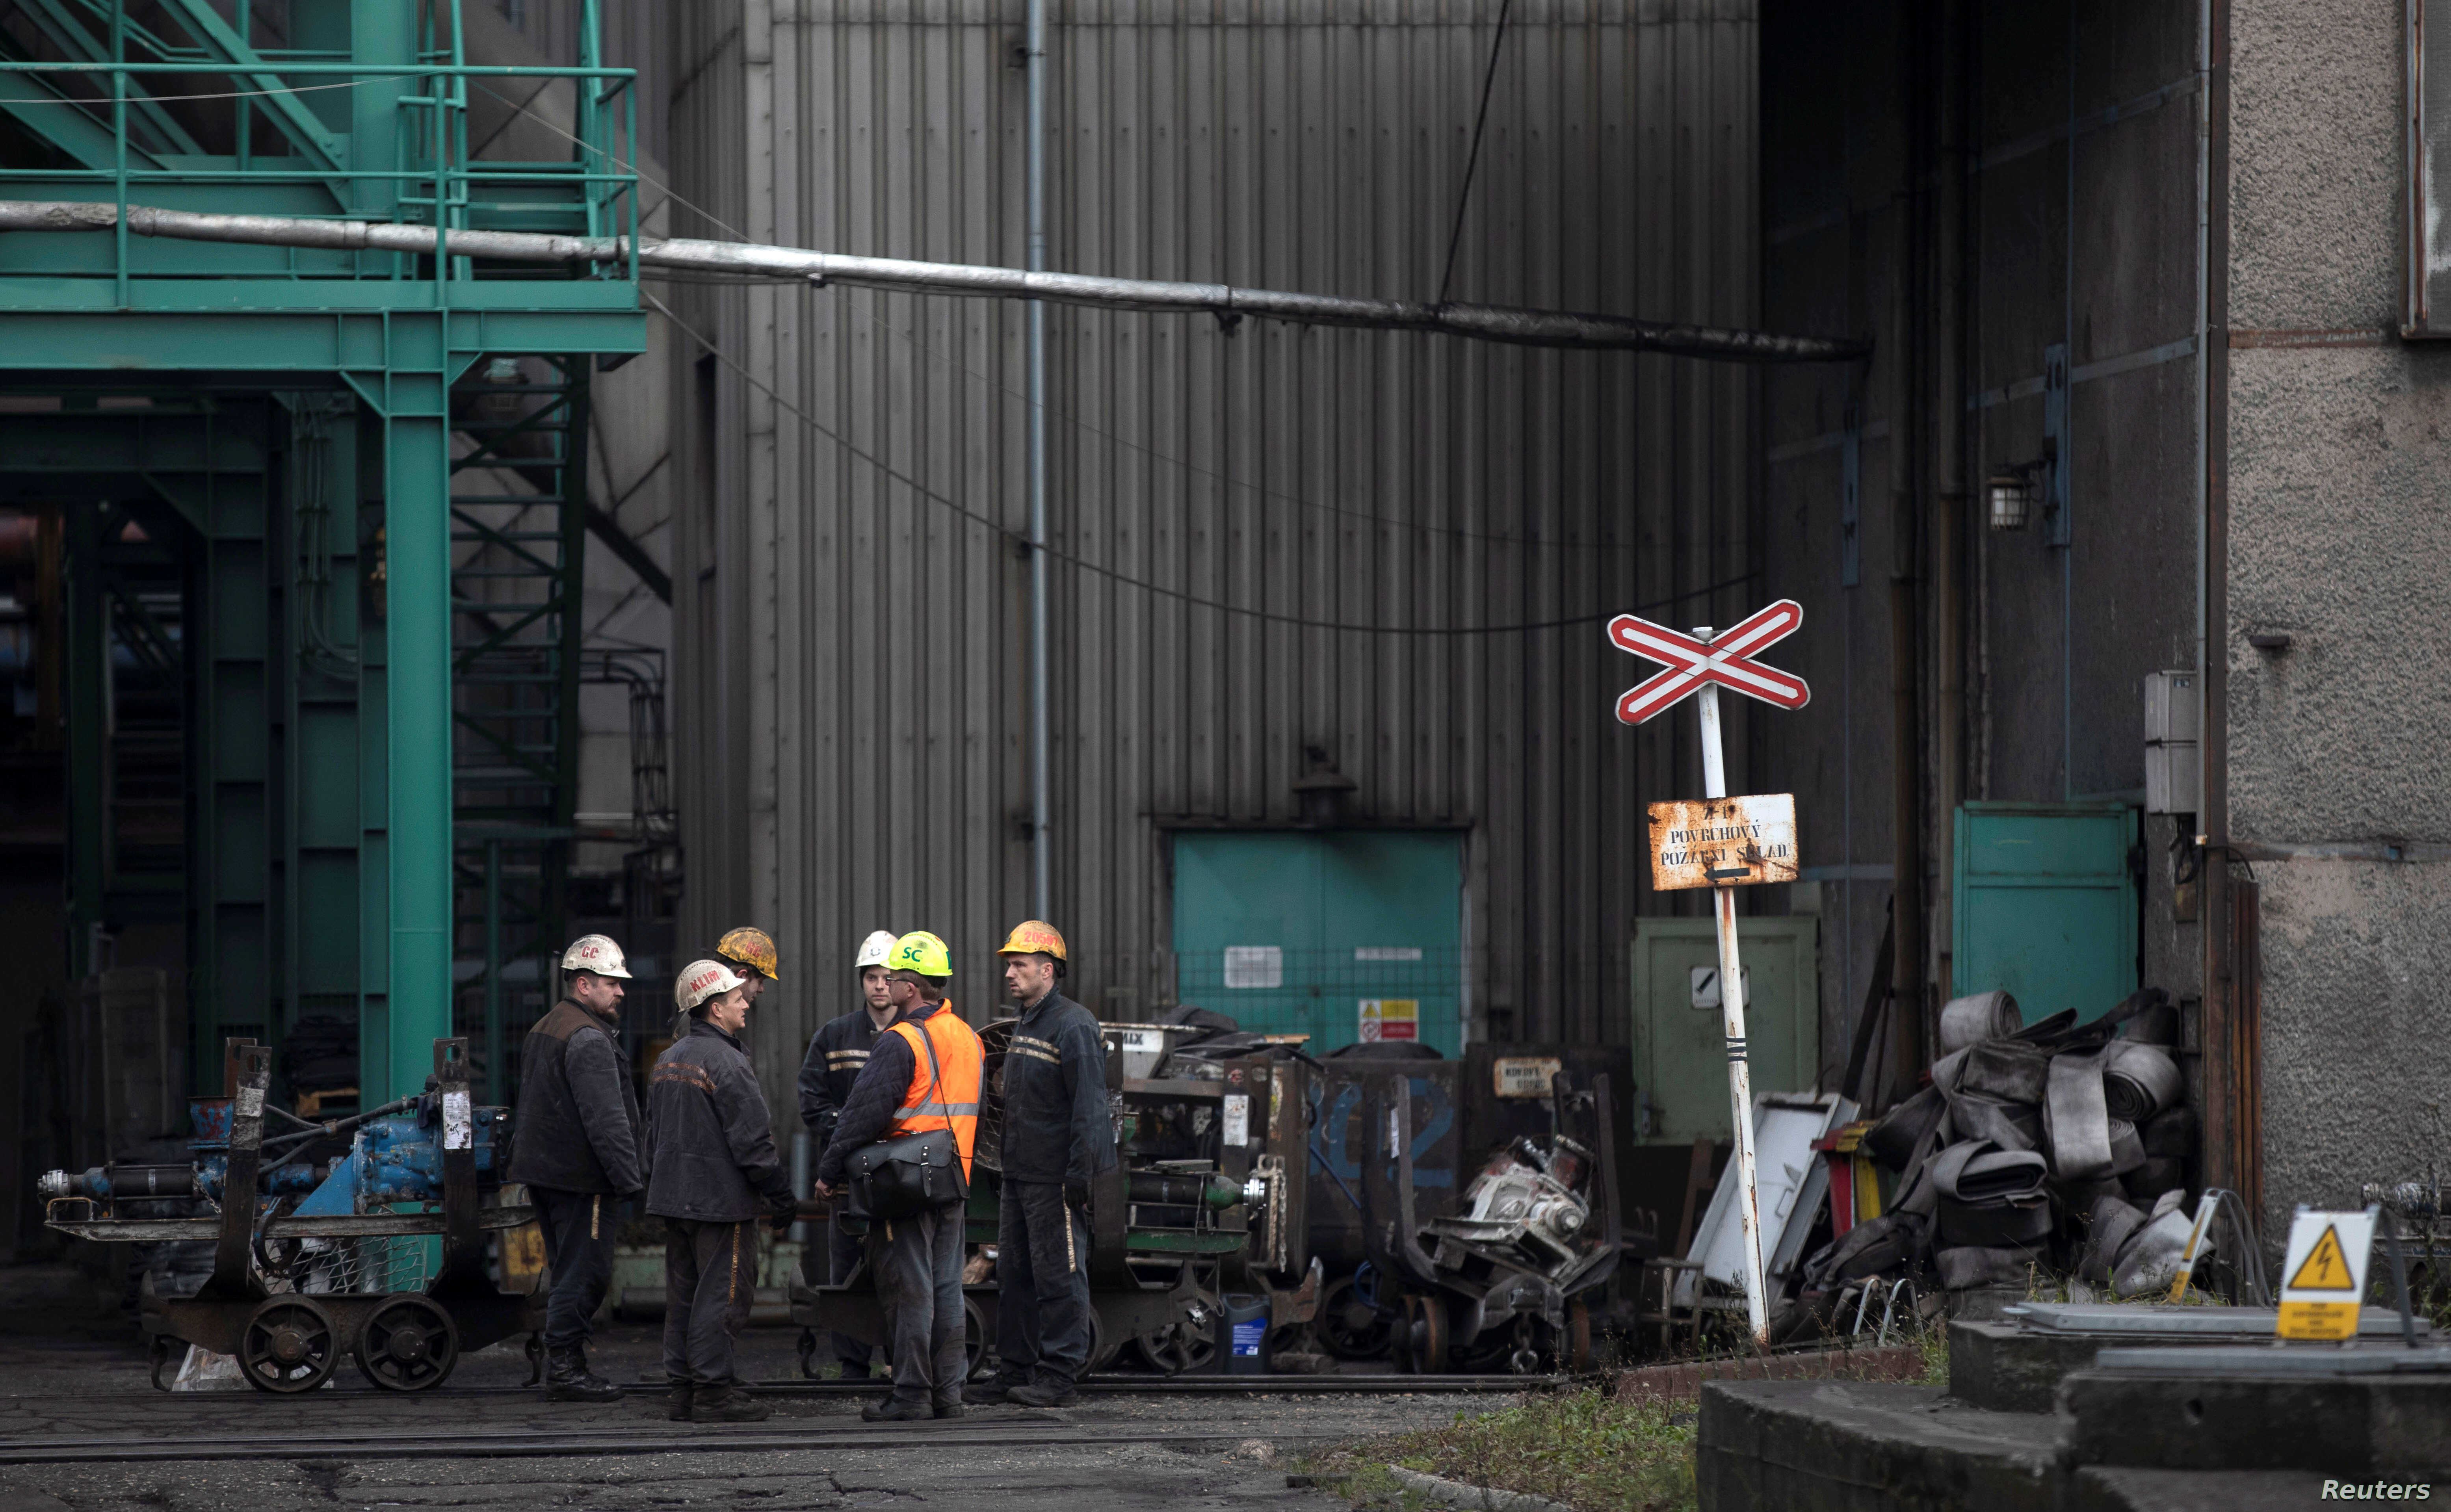 Miners stand at a compound of the CSM hard coal mine after a methane explosion near the town of Karvina, Czech Republic, December 21, 2018.